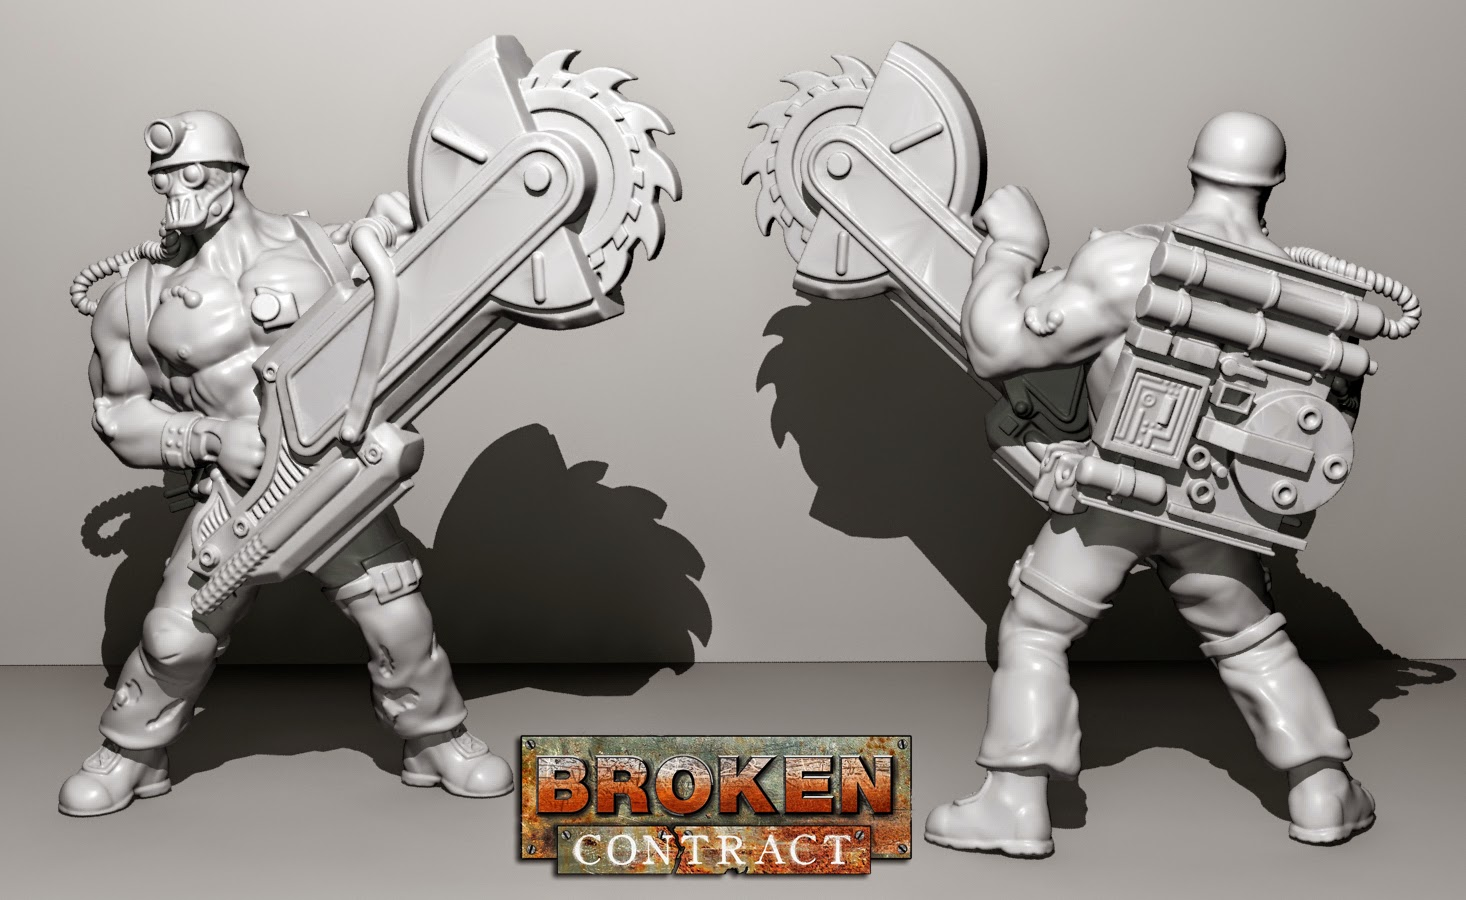 Year 2014 Tabletop Gaming News Tgn Ninja Division Painting Cerci Speed Circuit Broken Contract Has A Couple New Test 3d Render That Theyre Showing Off For Their Upcoming Box Set Will Be On Kickstarter Next